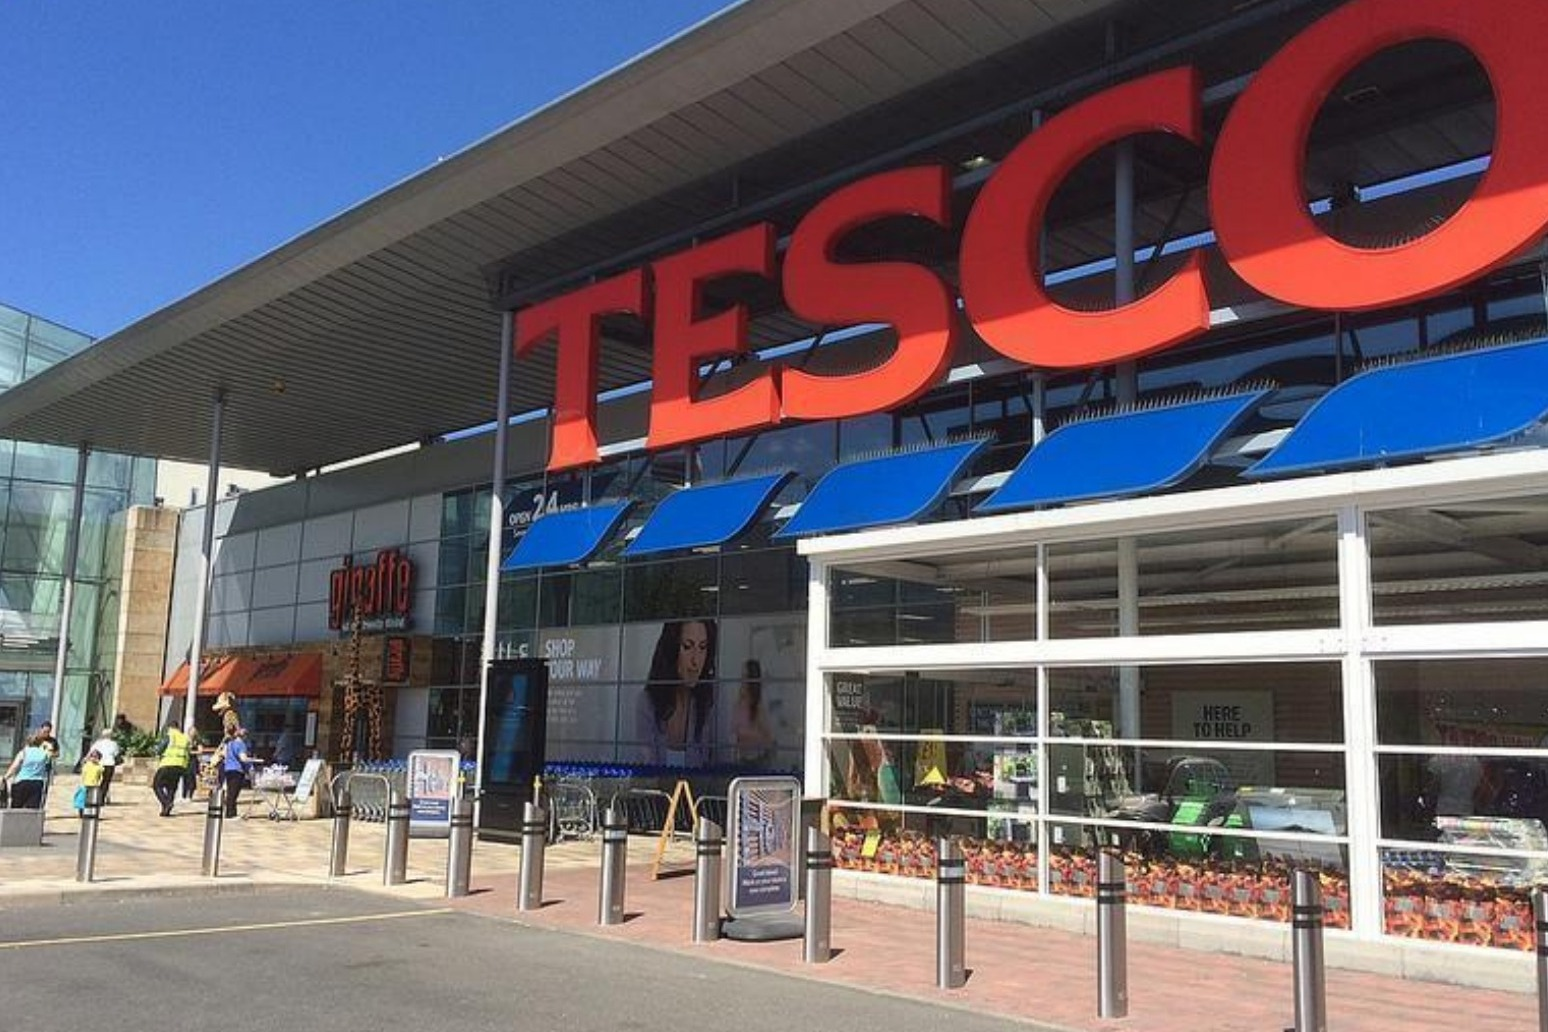 Tesco shines in home market and beats annual profit forecast